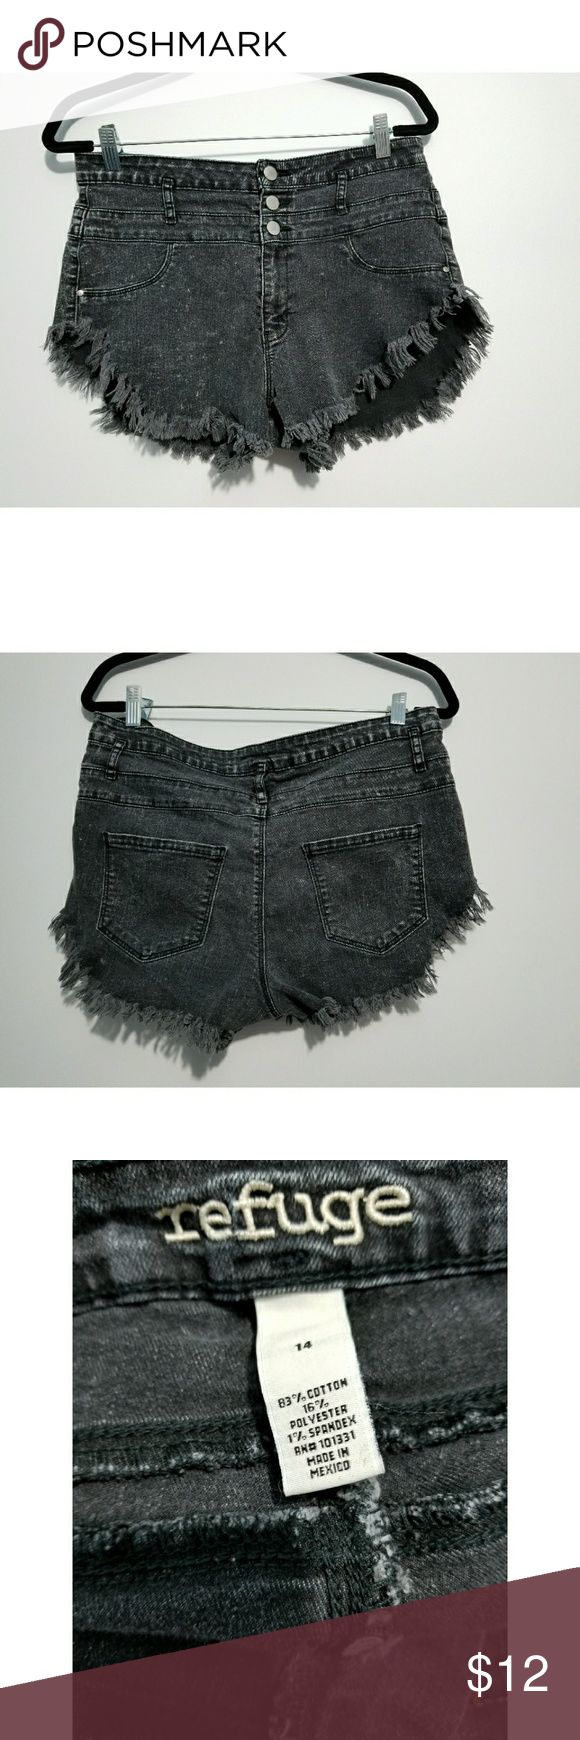 """REFUGE HIGH WAIST FRINGED HEMACID WASH SHORTS REFUGE HIGH WAIST FRINGED HEMACID WASH SHORTS   SIZE: 14  MATERIAL: 83% COTTON, 16% POLYESTER, 1% SPANDEX   APPROX. MEASUREMENTS (taken laying flat):  WAIST: 16"""" RISE: 11"""" INSEAM: 2""""  ***I inspect all my items for holes, tears and stains before listing. It will be noted in my listing if there are any flaws. Item is from a pet and smoke free home***  *** PLEASE LOOK THROUGH ALL THE PHOTOS BEFORE PURCHASING ITEM***  Thank you for looking…"""